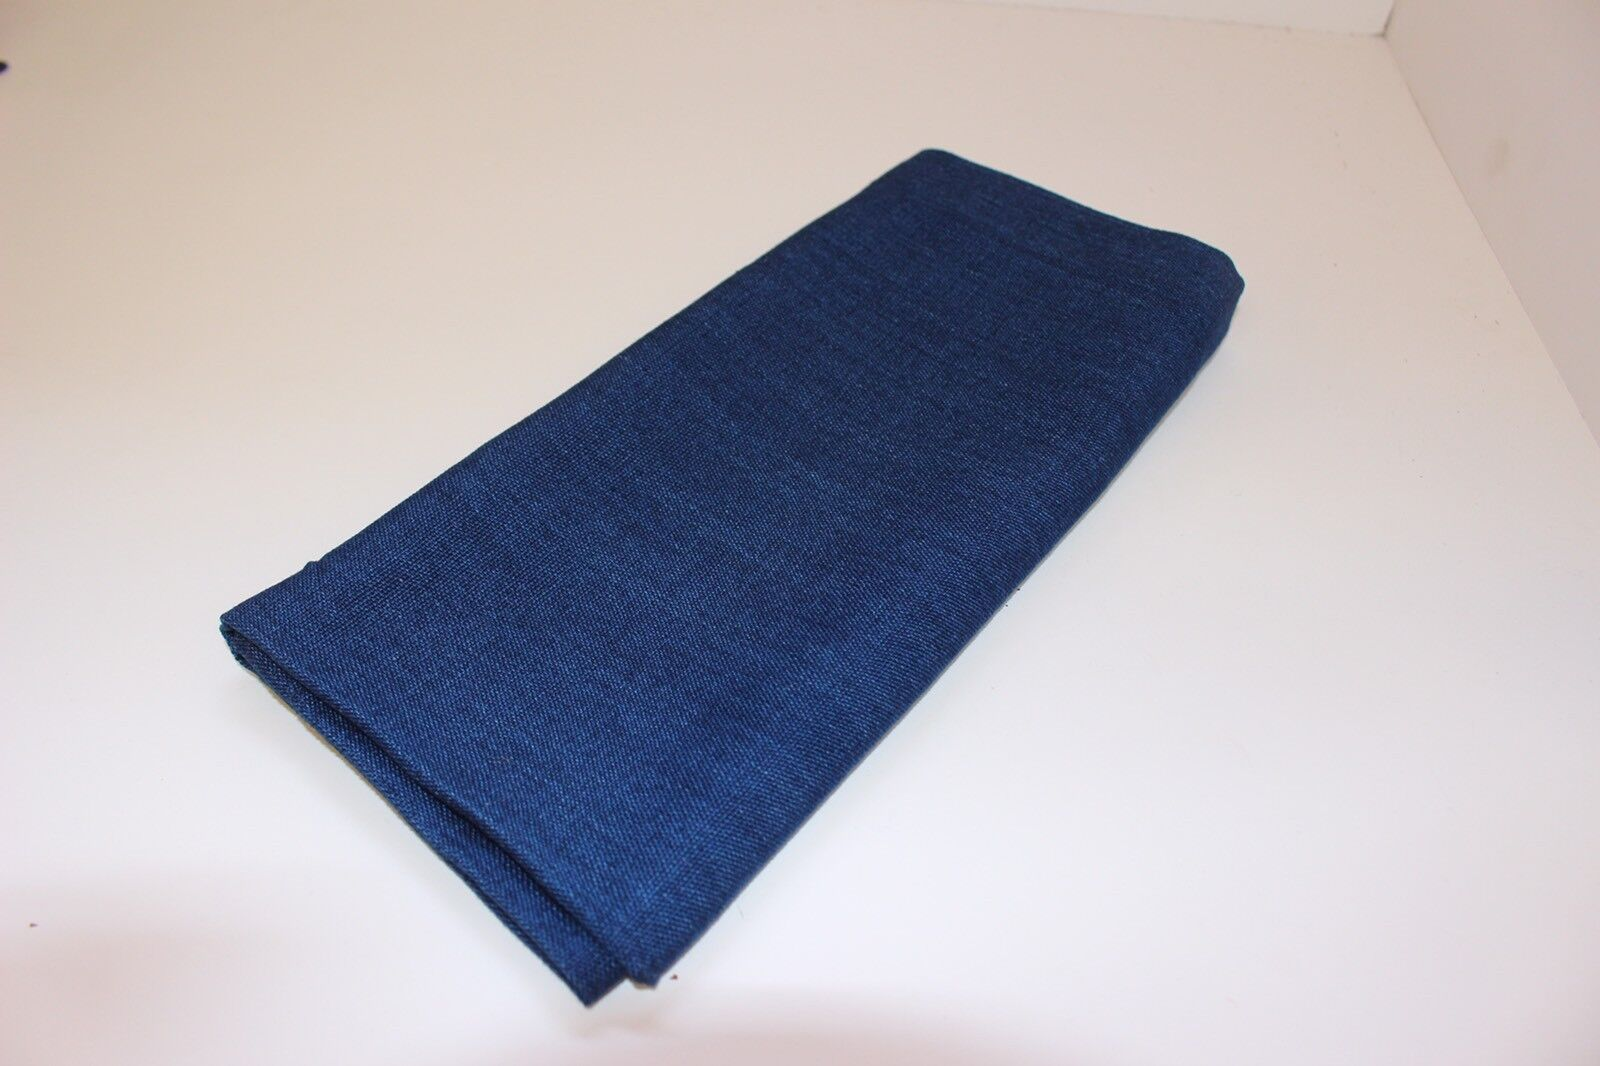 Guatemalan Handwoven Indigo Napkin With With With Napkin Ring Tableware Set Of 4 ad6785